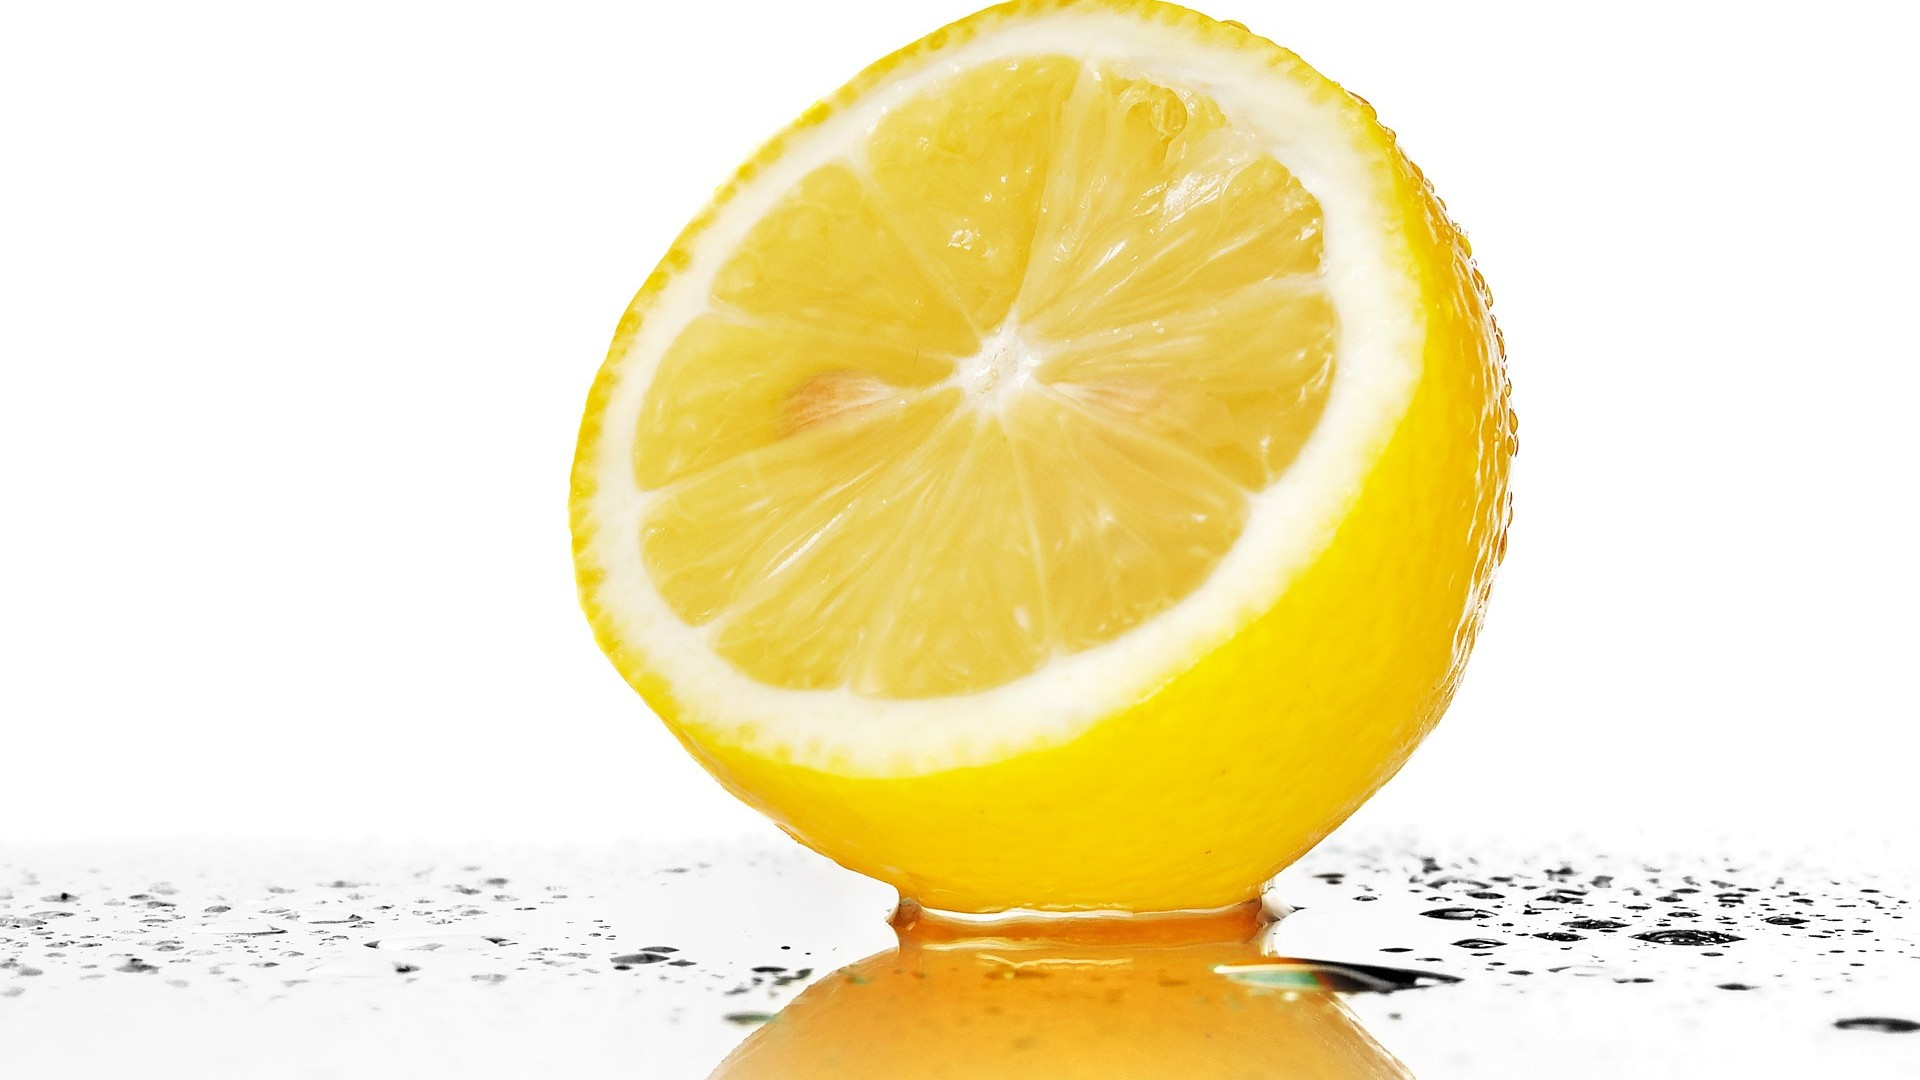 http://4.bp.blogspot.com/-POsK7j3_IXM/UD9y4k7BcTI/AAAAAAAAEUY/0z5DYAZ1Wp0/s1920/big-juicy-lemon1080.jpg